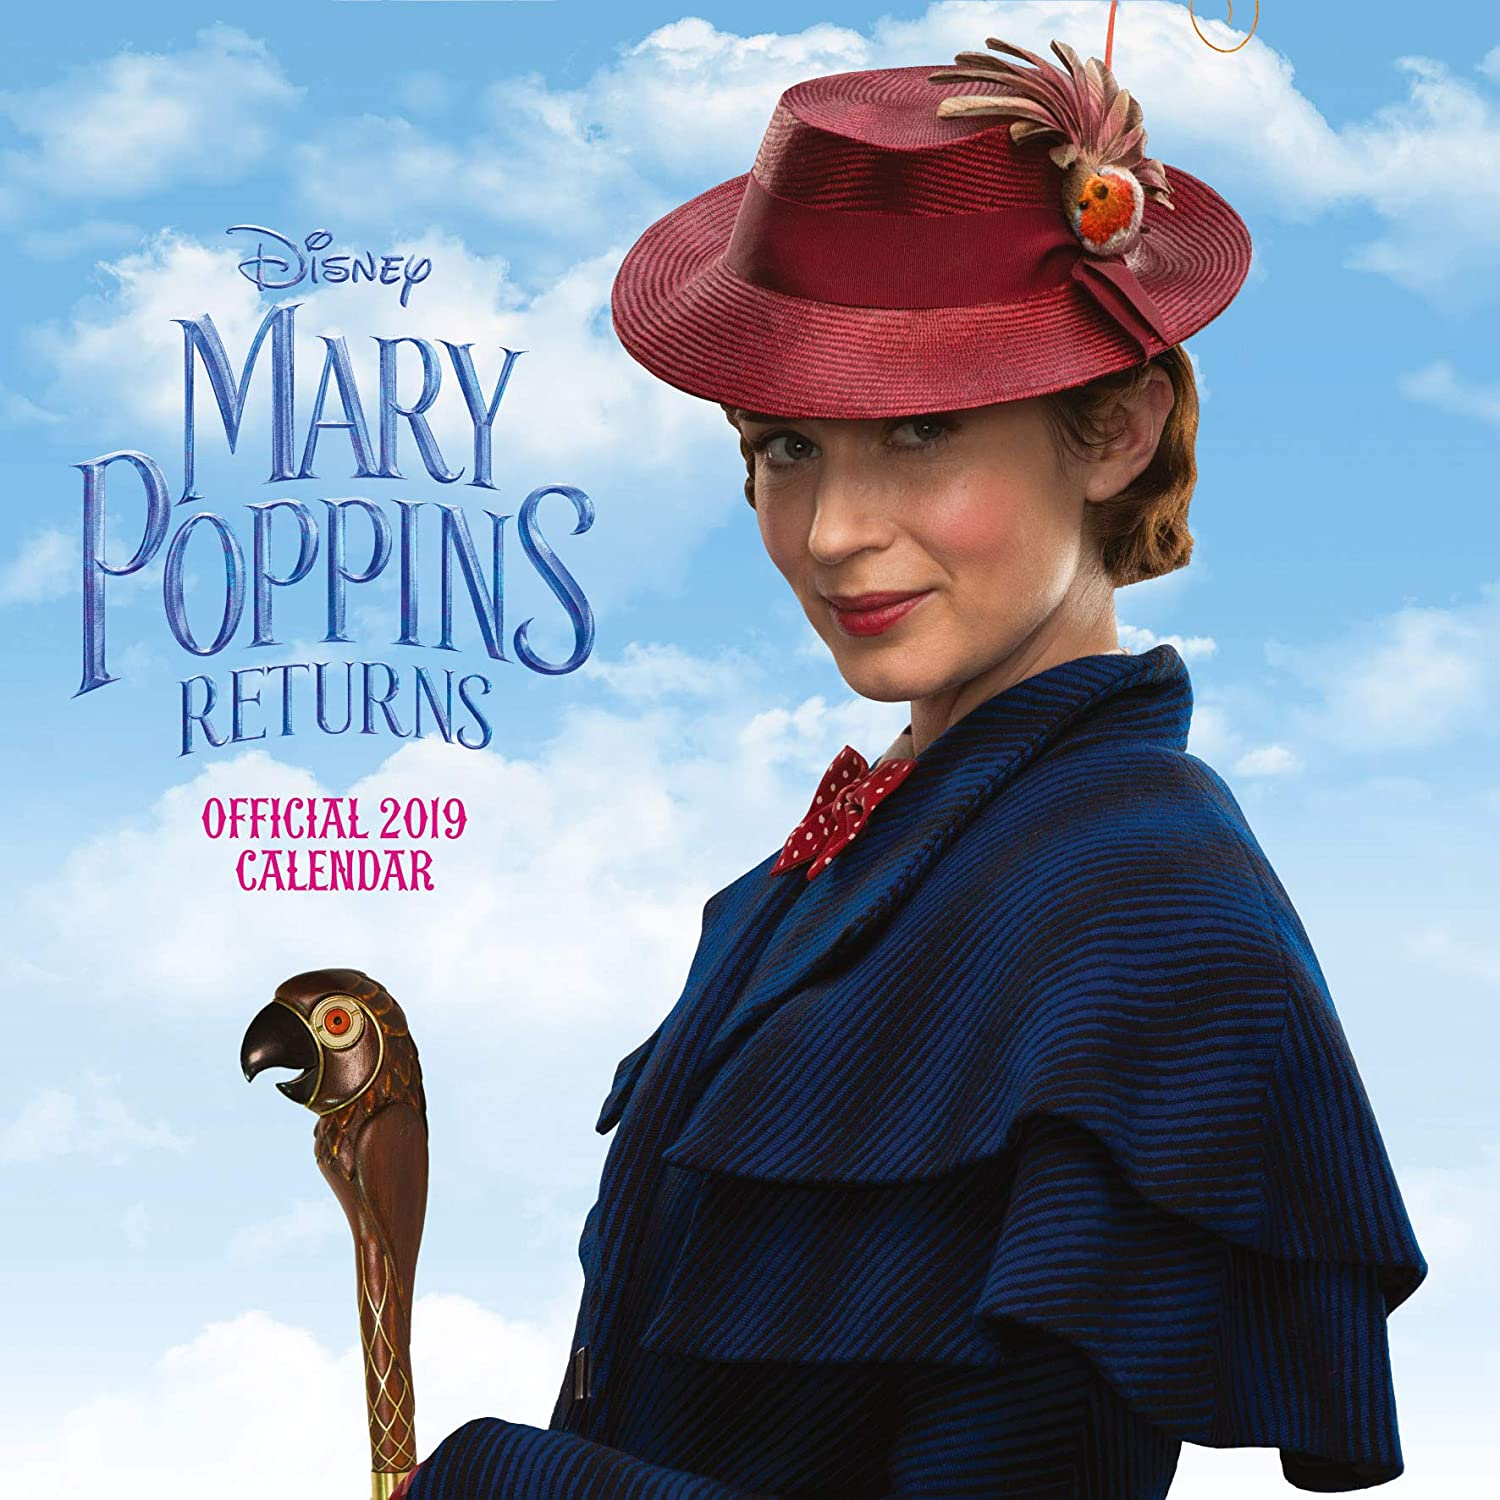 Mary Poppins Returns Official 2019 Calendar - Square Wall Calendar Format